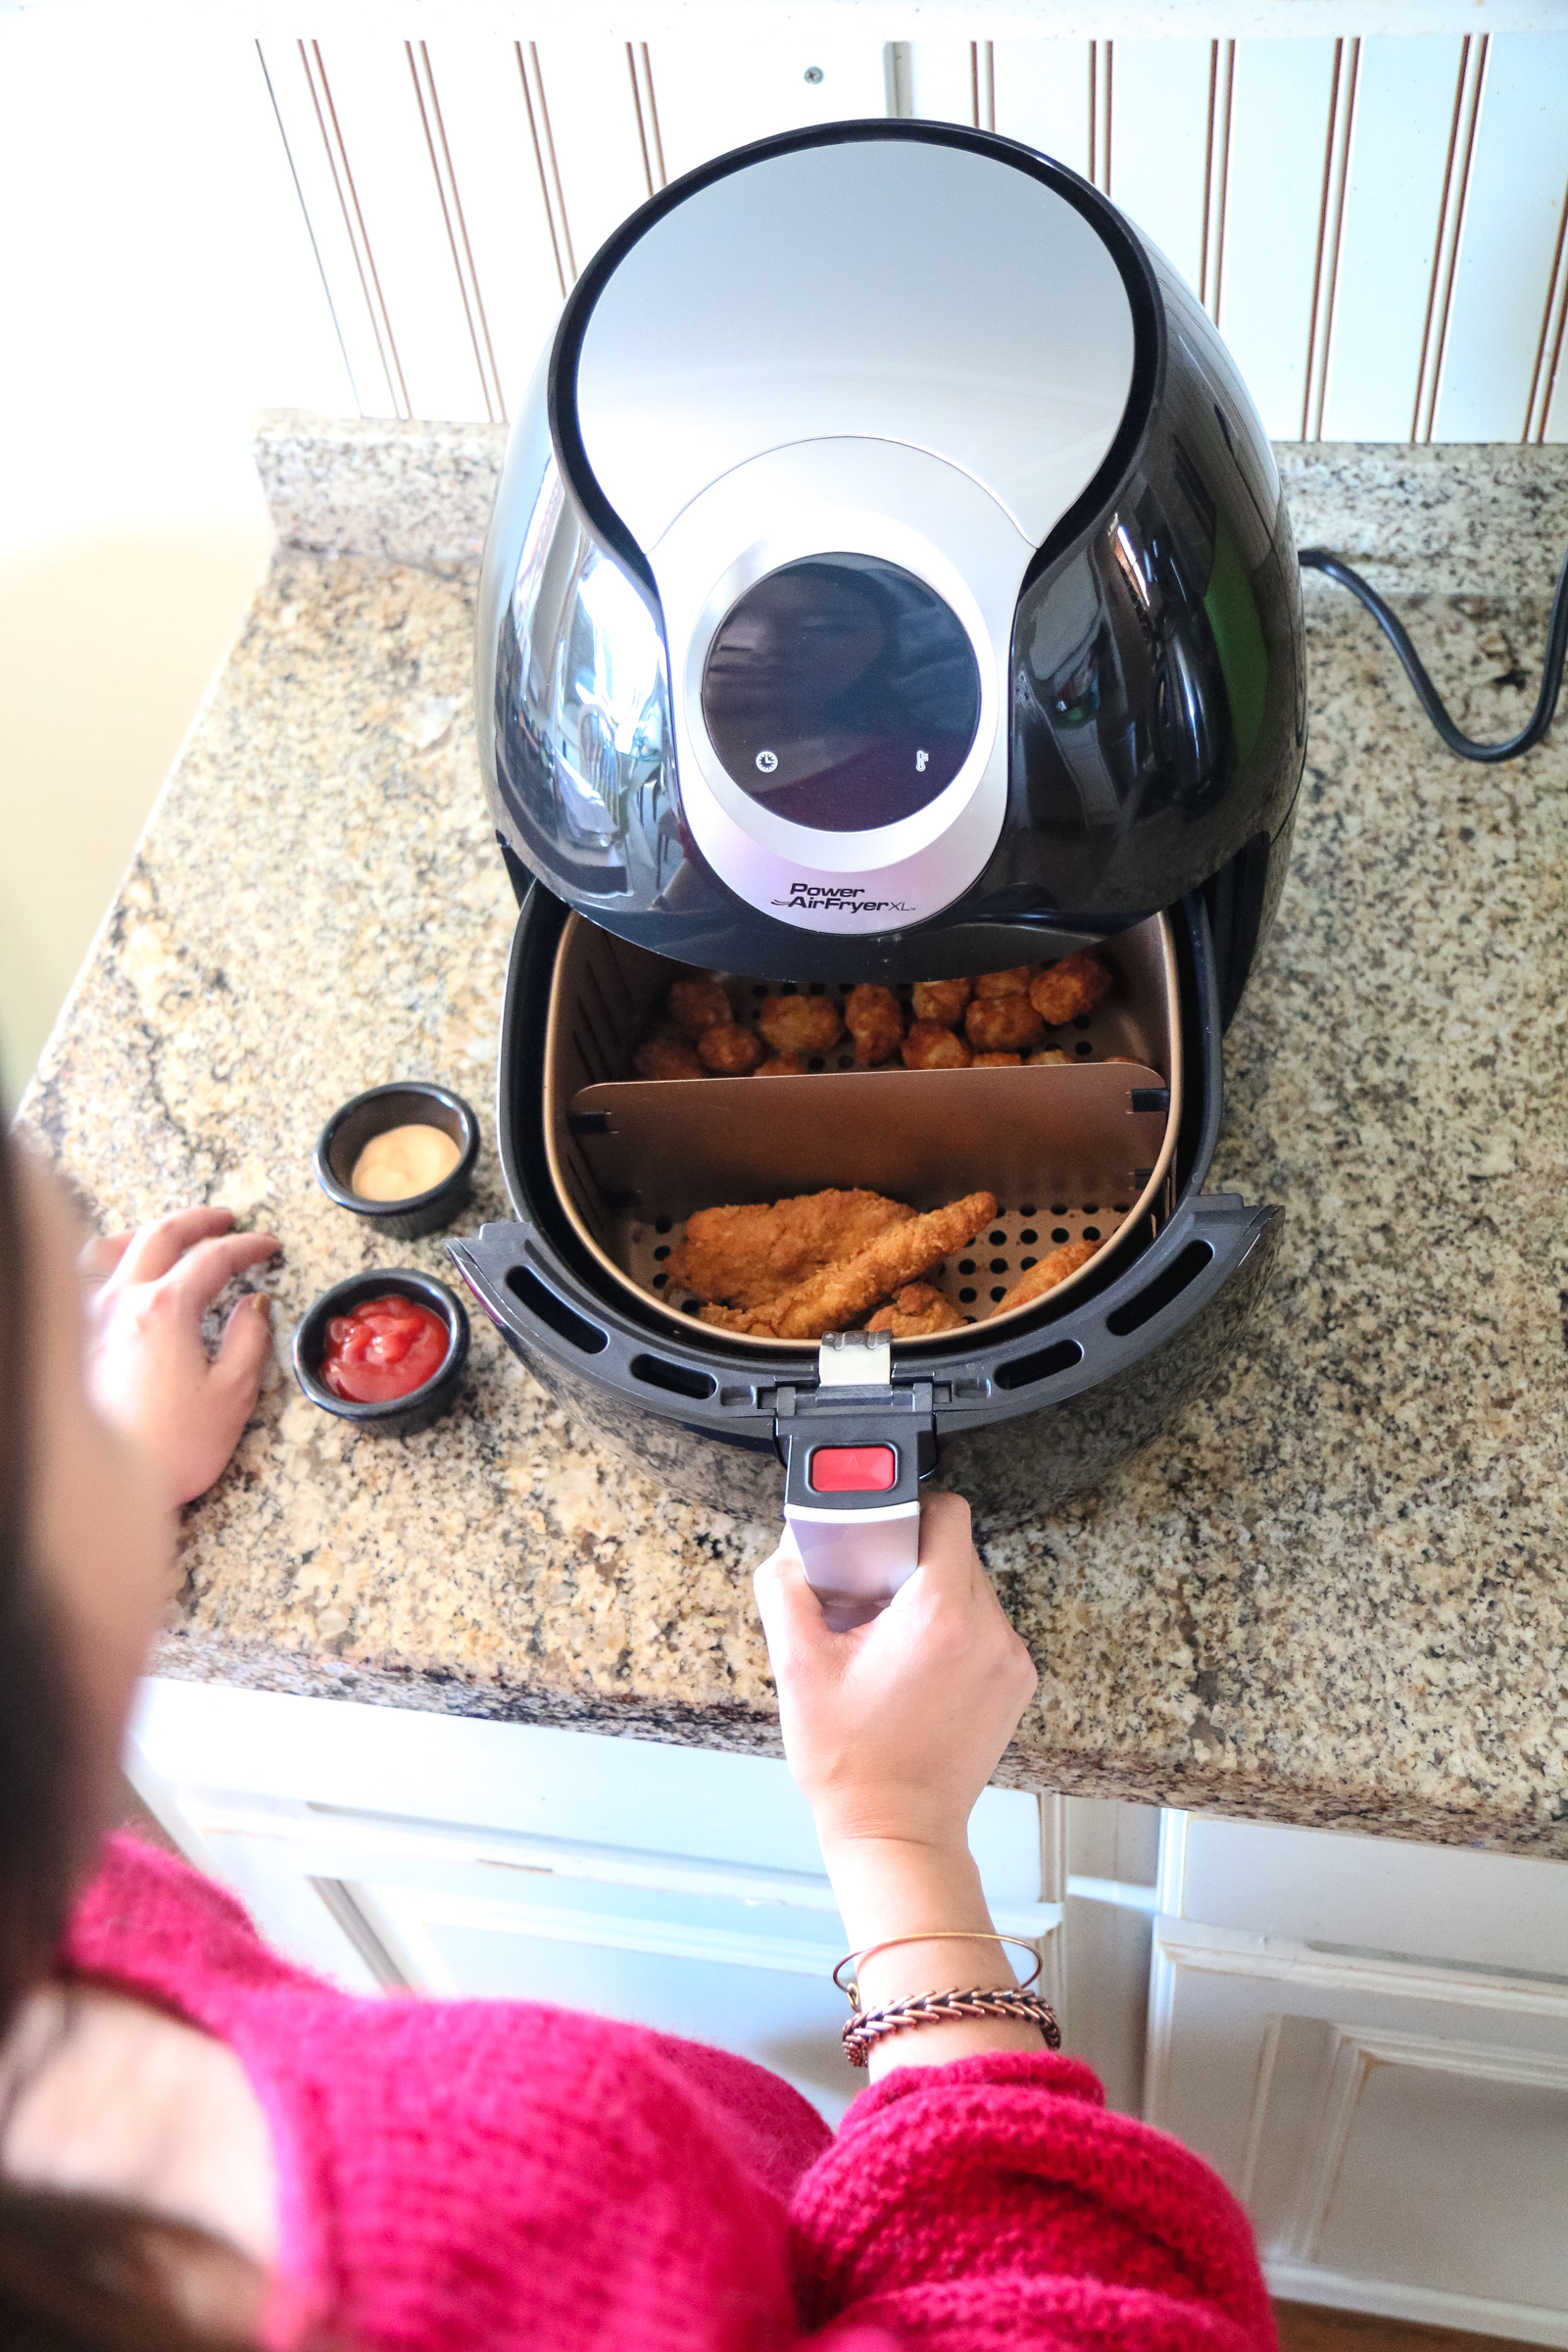 AirFryer from Bed, Bath & Beyond